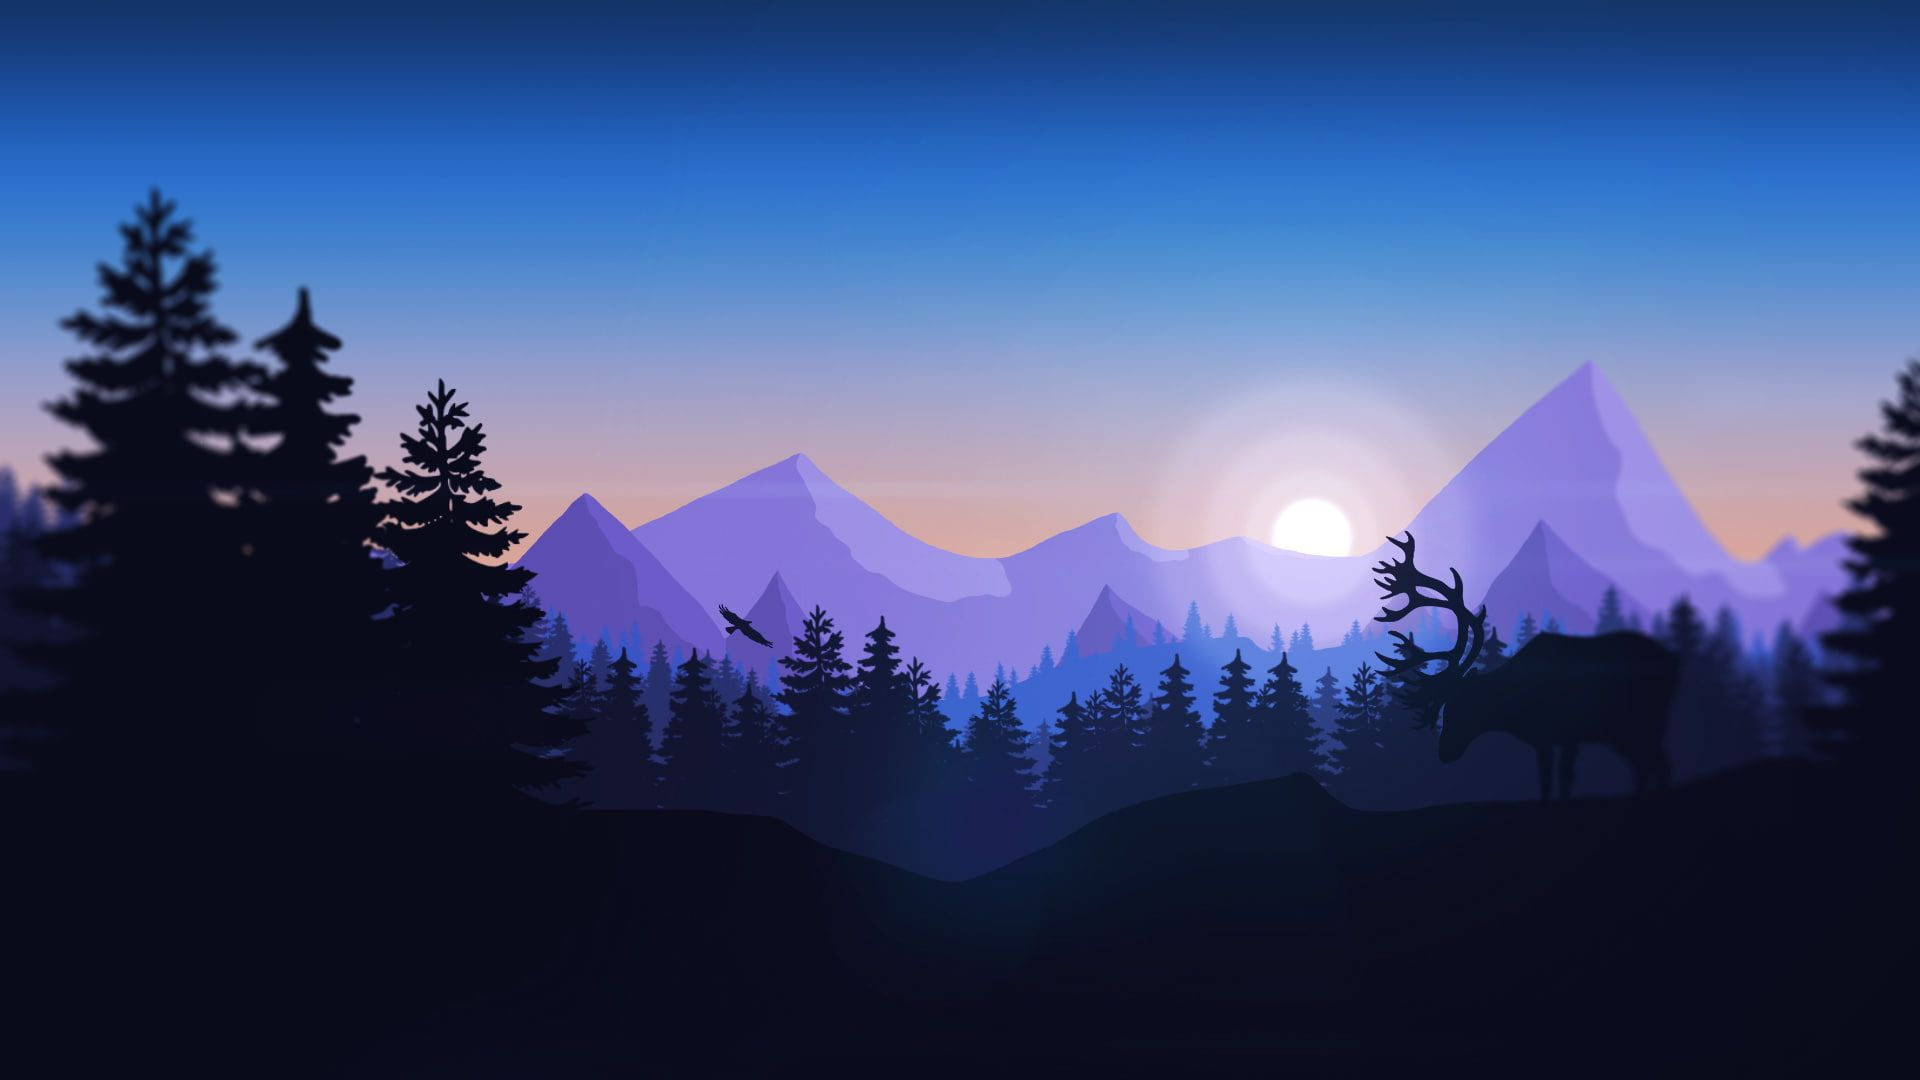 Firewatch Minimalism Games Hd Minimalist 1080p Wallpaper Hdwallpaper Desktop In 2020 Chill Wallpaper Desktop Wallpaper Art Minimalist Wallpaper